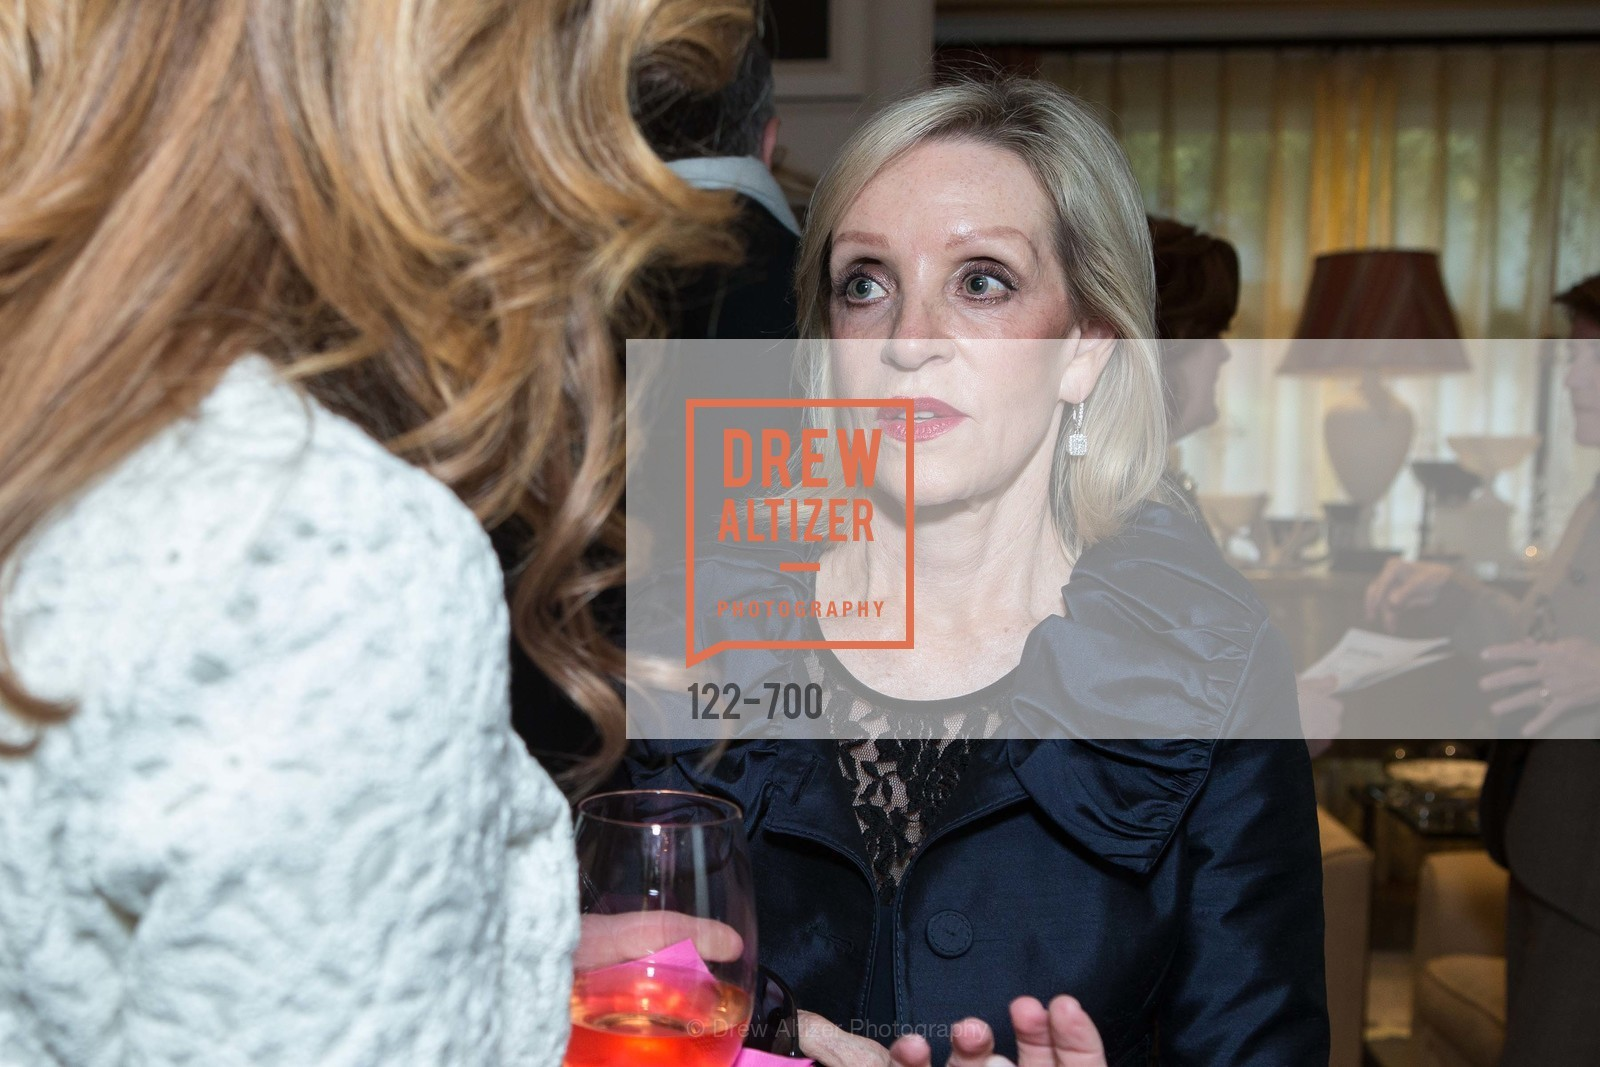 Barbara Brown, SUKEY FORBES' Book Signing, US, May 7th, 2015,Drew Altizer, Drew Altizer Photography, full-service agency, private events, San Francisco photographer, photographer california